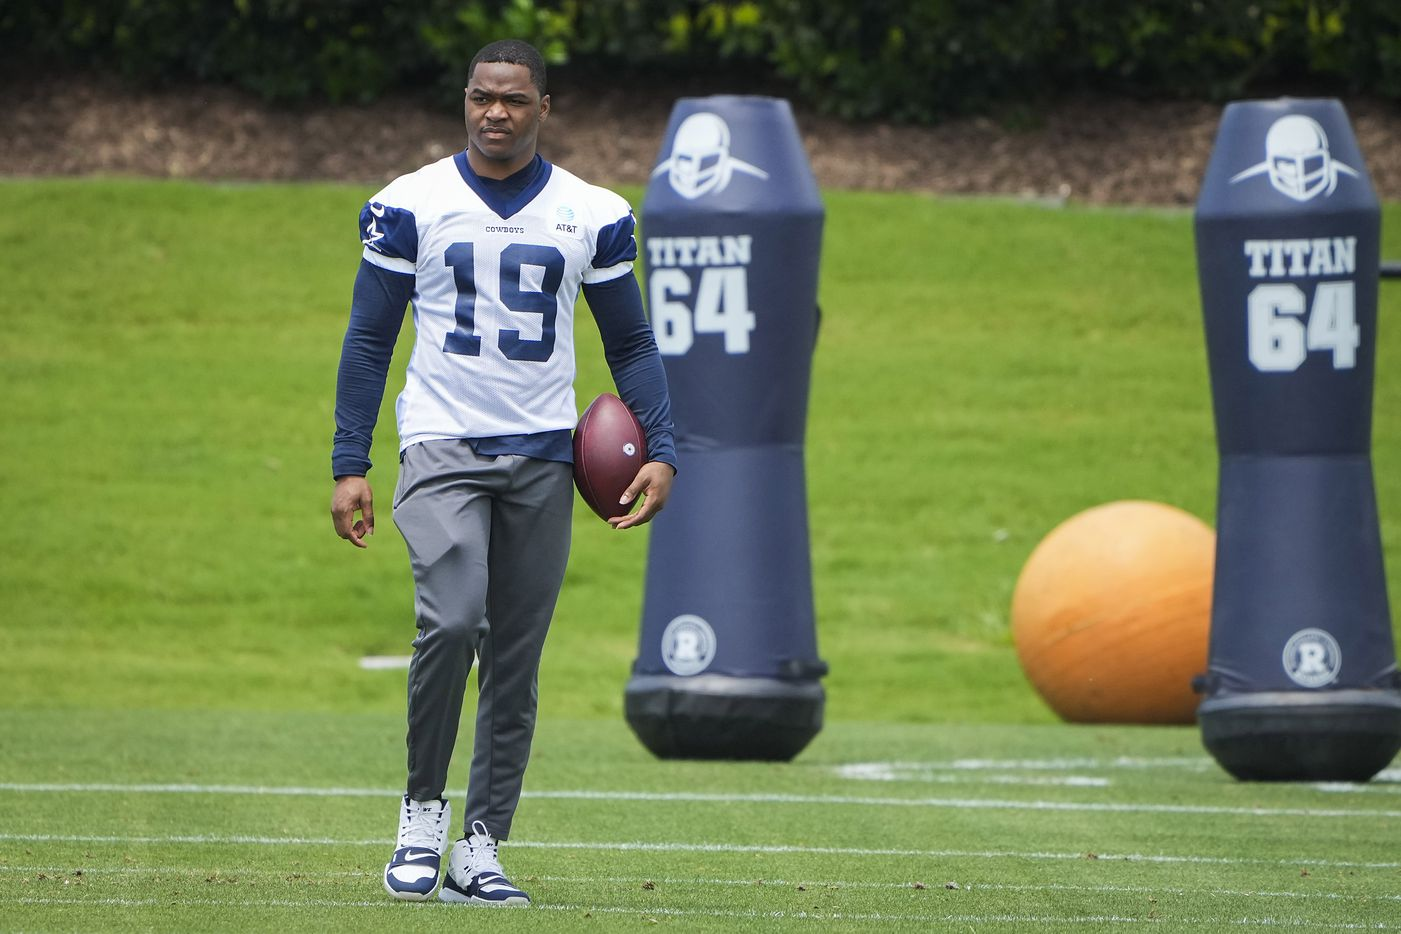 Dallas Cowboys wide receiver Amari Cooper watches his teammates run drills during a minicamp practice at The Star on Tuesday, June 8, 2021, in Frisco. (Smiley N. Pool/The Dallas Morning News)